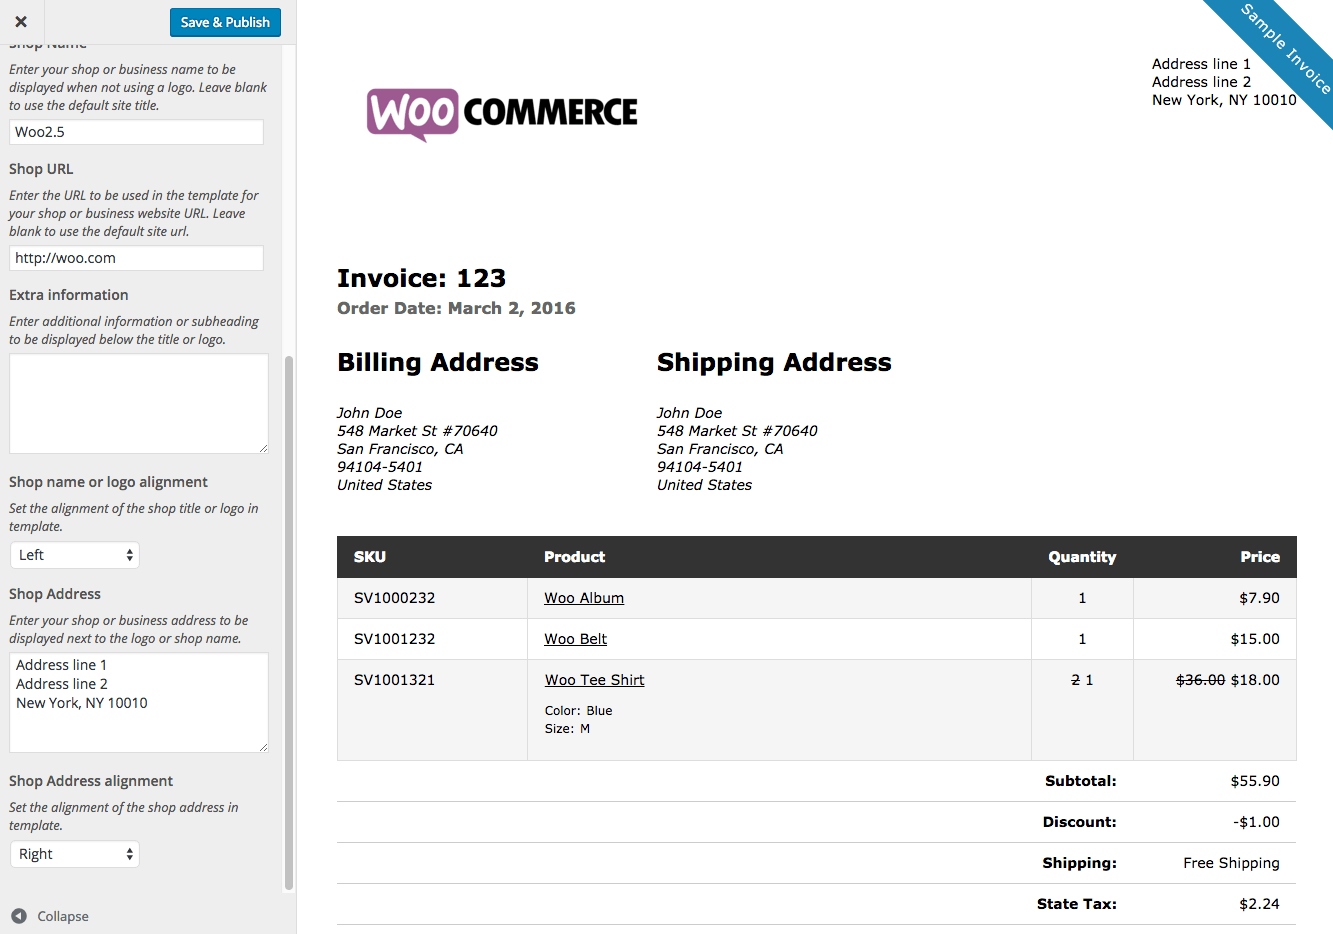 Ultrablogus  Winsome Woocommerce Print Invoices Amp Packing Lists  Woocommerce Docs With Luxury Woocommerce Print Invoices  Packing Lists Customizer With Enchanting Pos Thermal Receipt Printer Also Please Kindly Acknowledge Receipt Of This Email In Addition Where To Buy Receipt Books And How To Make A Fake Receipt Online As Well As Samsung Receipt Printer Additionally Certified Return Receipt Fees From Docswoocommercecom With Ultrablogus  Luxury Woocommerce Print Invoices Amp Packing Lists  Woocommerce Docs With Enchanting Woocommerce Print Invoices  Packing Lists Customizer And Winsome Pos Thermal Receipt Printer Also Please Kindly Acknowledge Receipt Of This Email In Addition Where To Buy Receipt Books From Docswoocommercecom